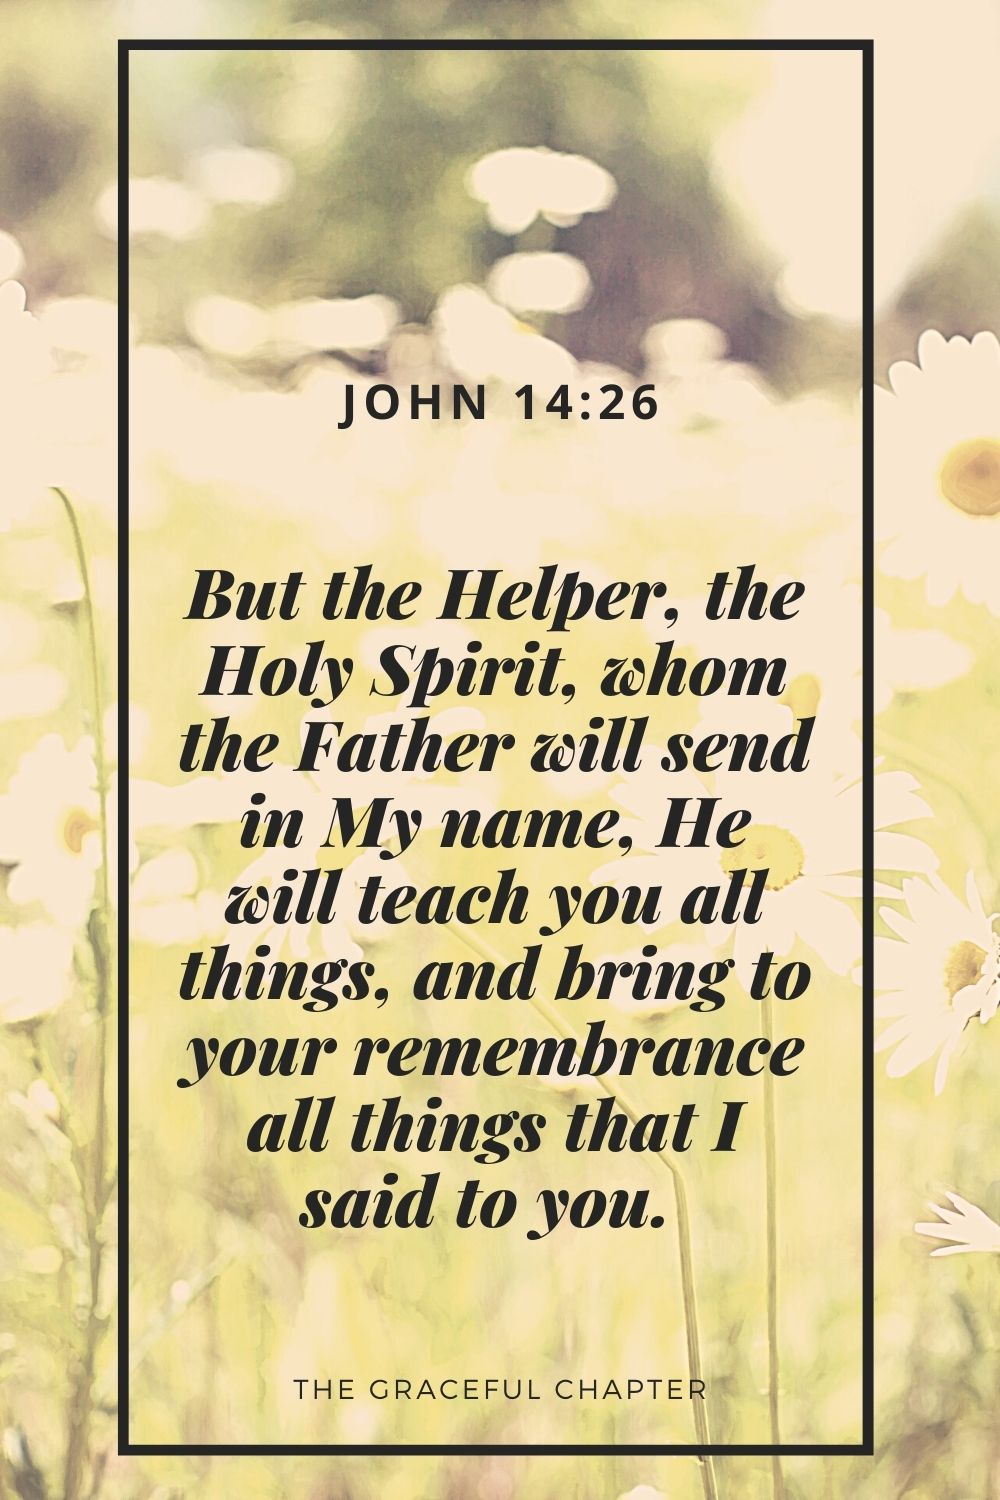 But the Helper, the Holy Spirit, whom the Father will send in My name, He will teach you all things, and bring to your remembrance all things that I said to you.  John 14:26